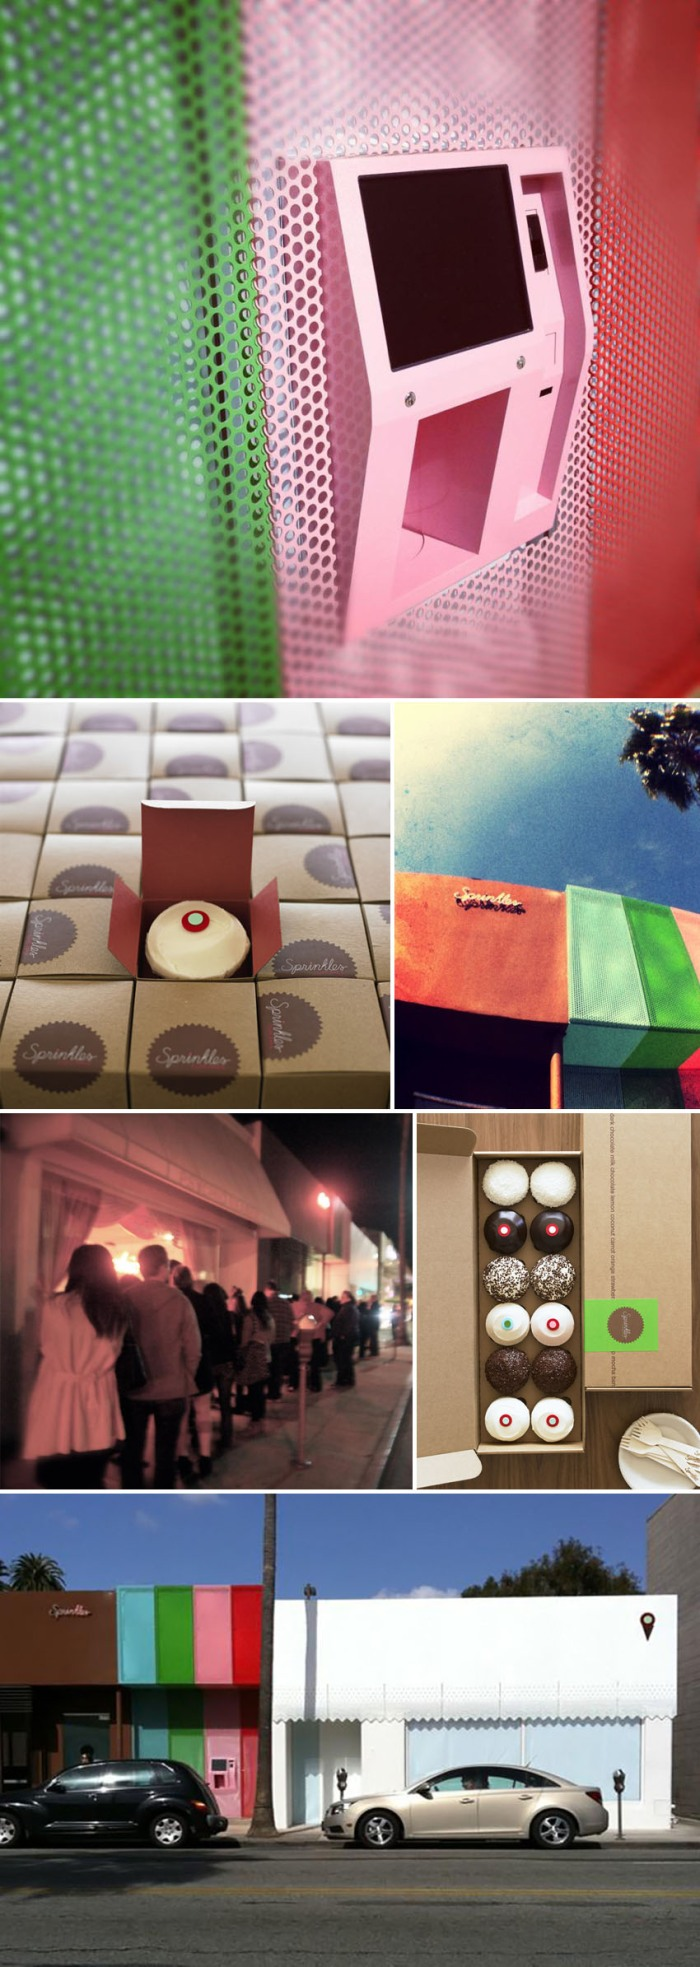 cool vending machine, 24-hour cupcake atm, Sprinkles cupcakes, food, dessert, collabcubed